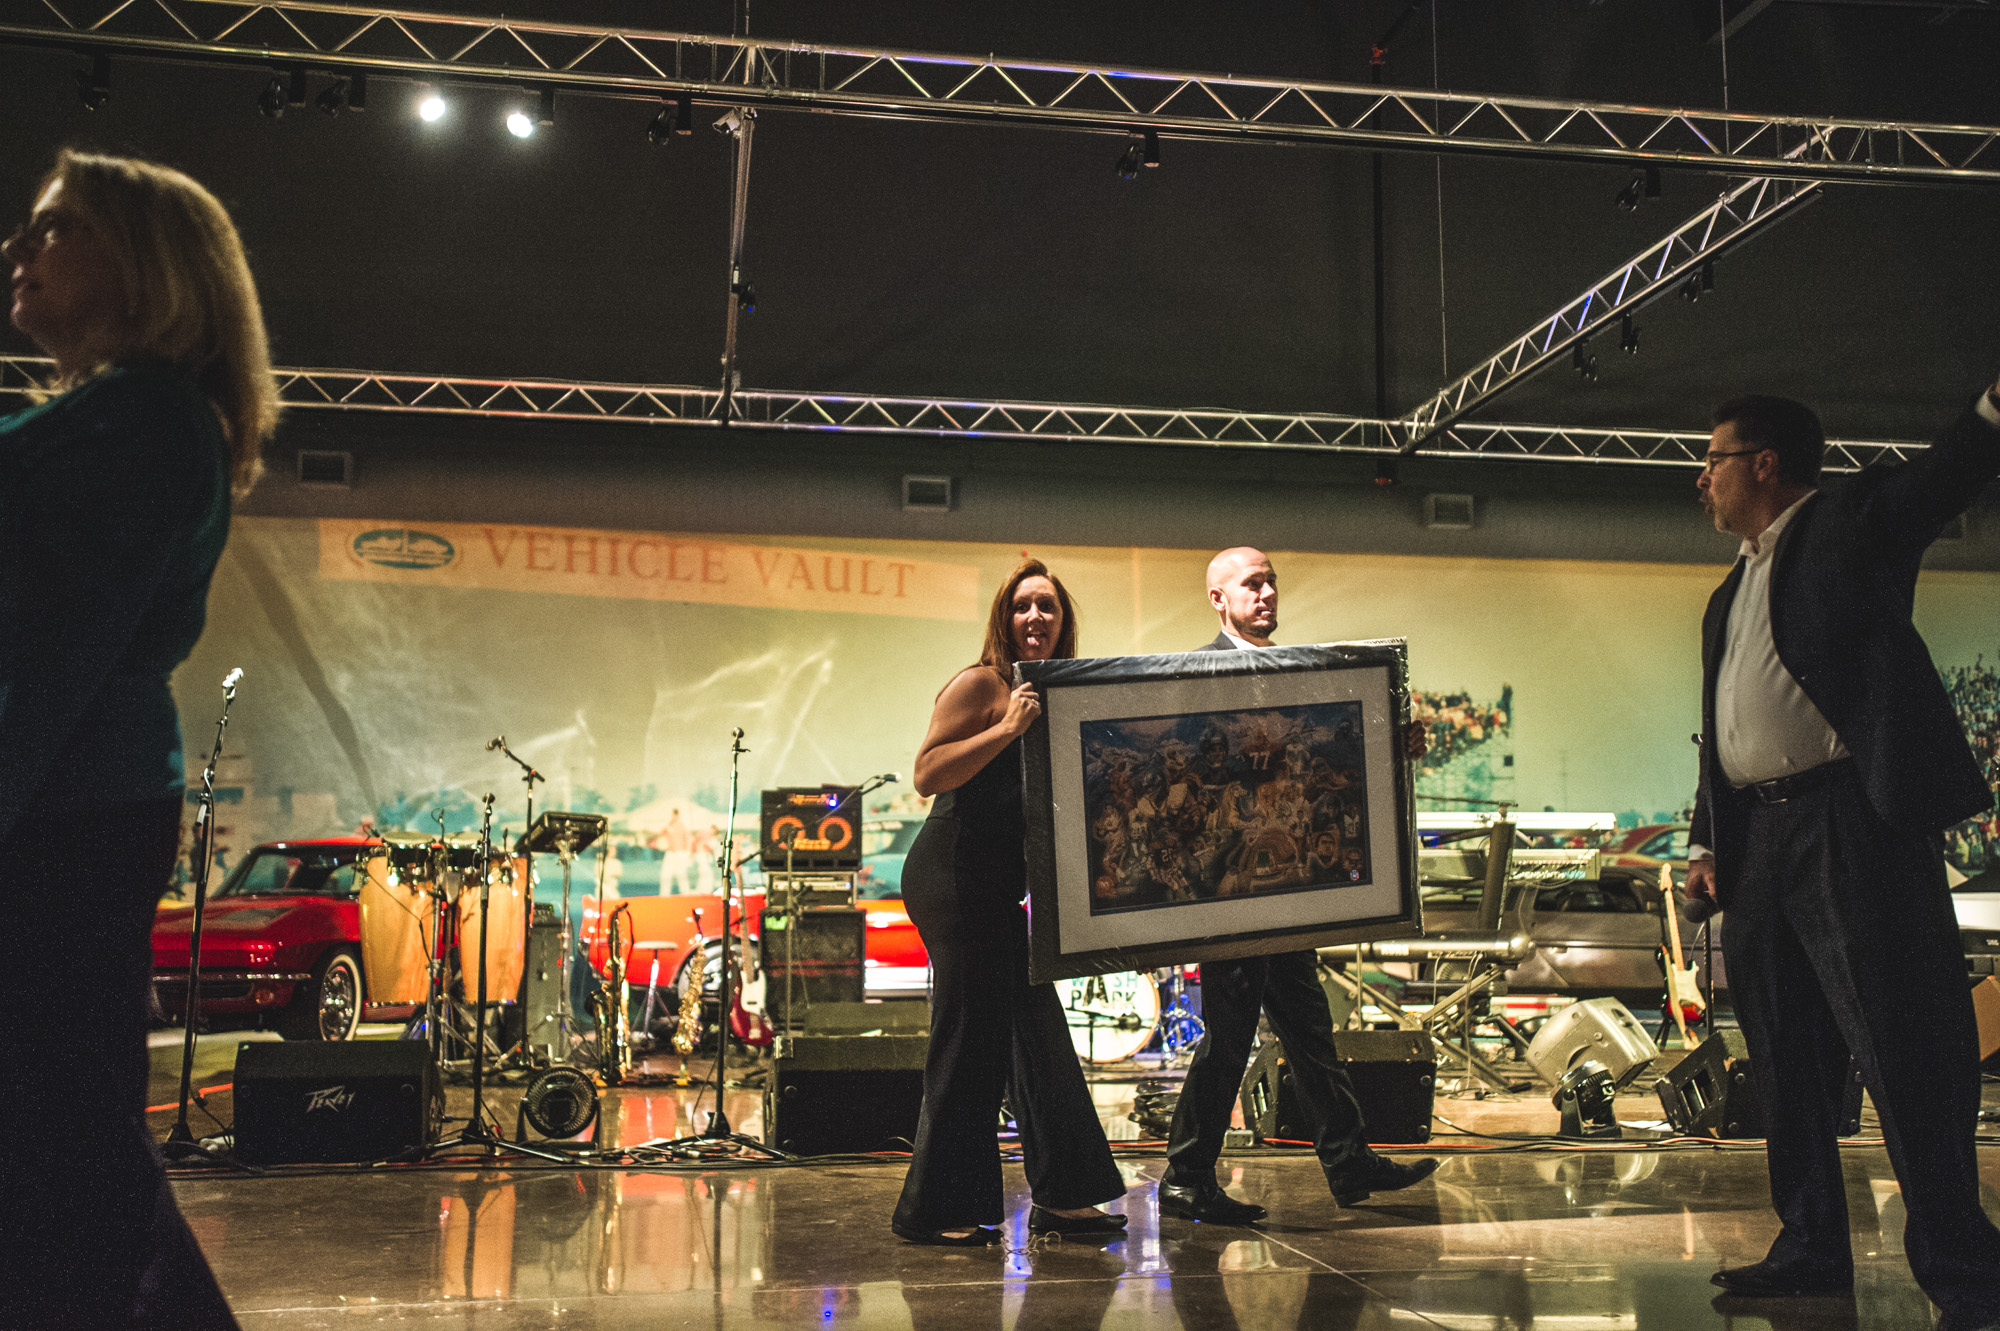 A woman and a man hold a giant framed auction item at the Vehicle Vault in Parker, Colorado. Color.